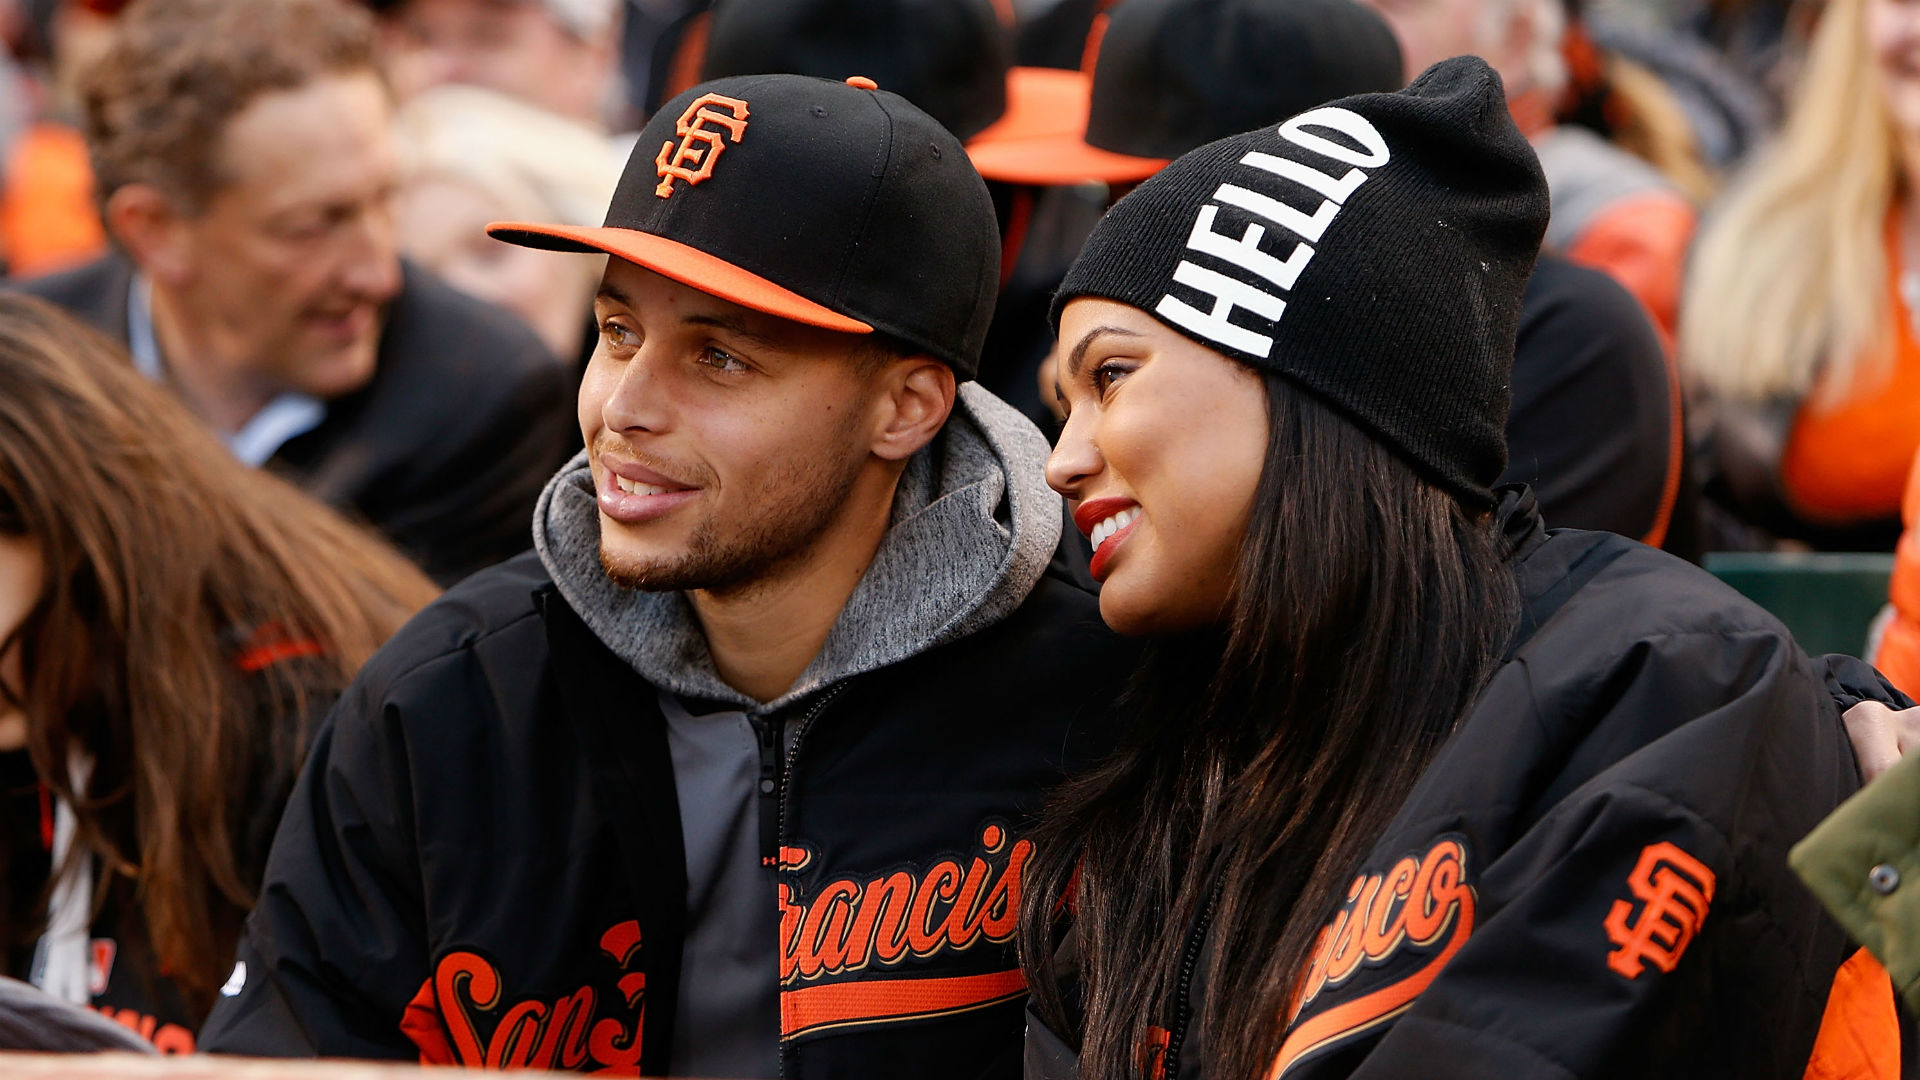 Stephen Curry Trolls Madison Bumgarner over Dirt Bike Injury